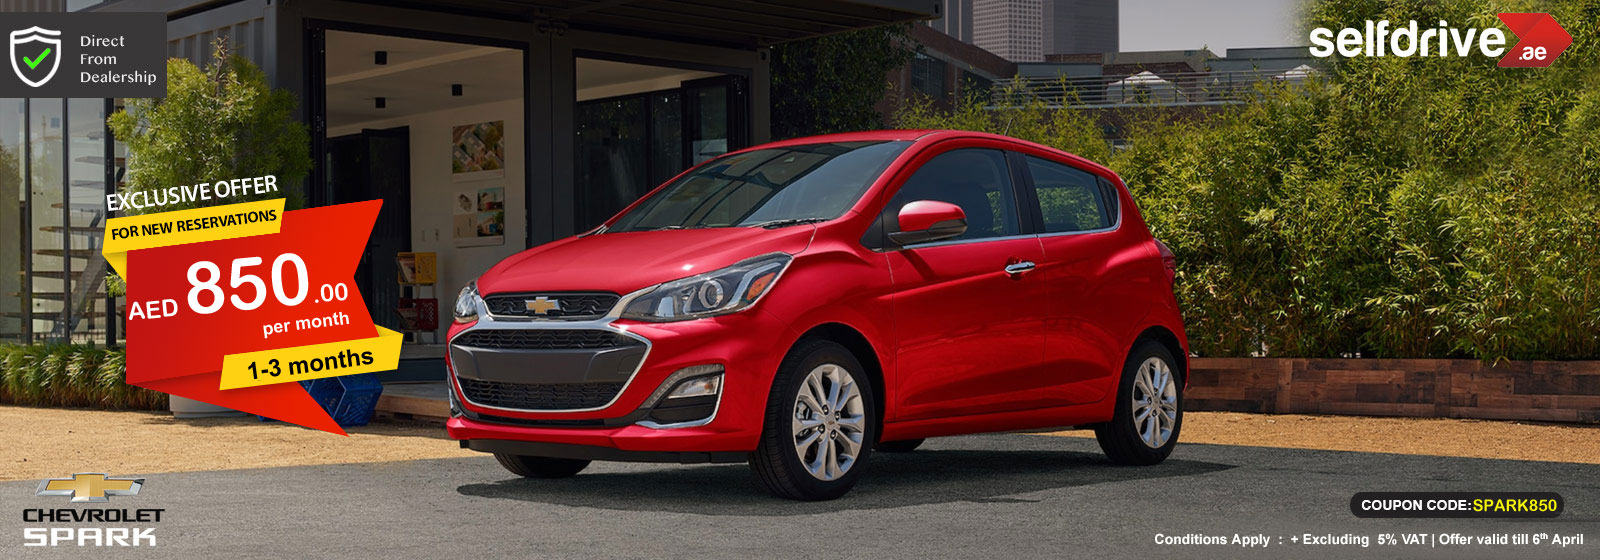 Rent Chevrolet Spark exclusive offer